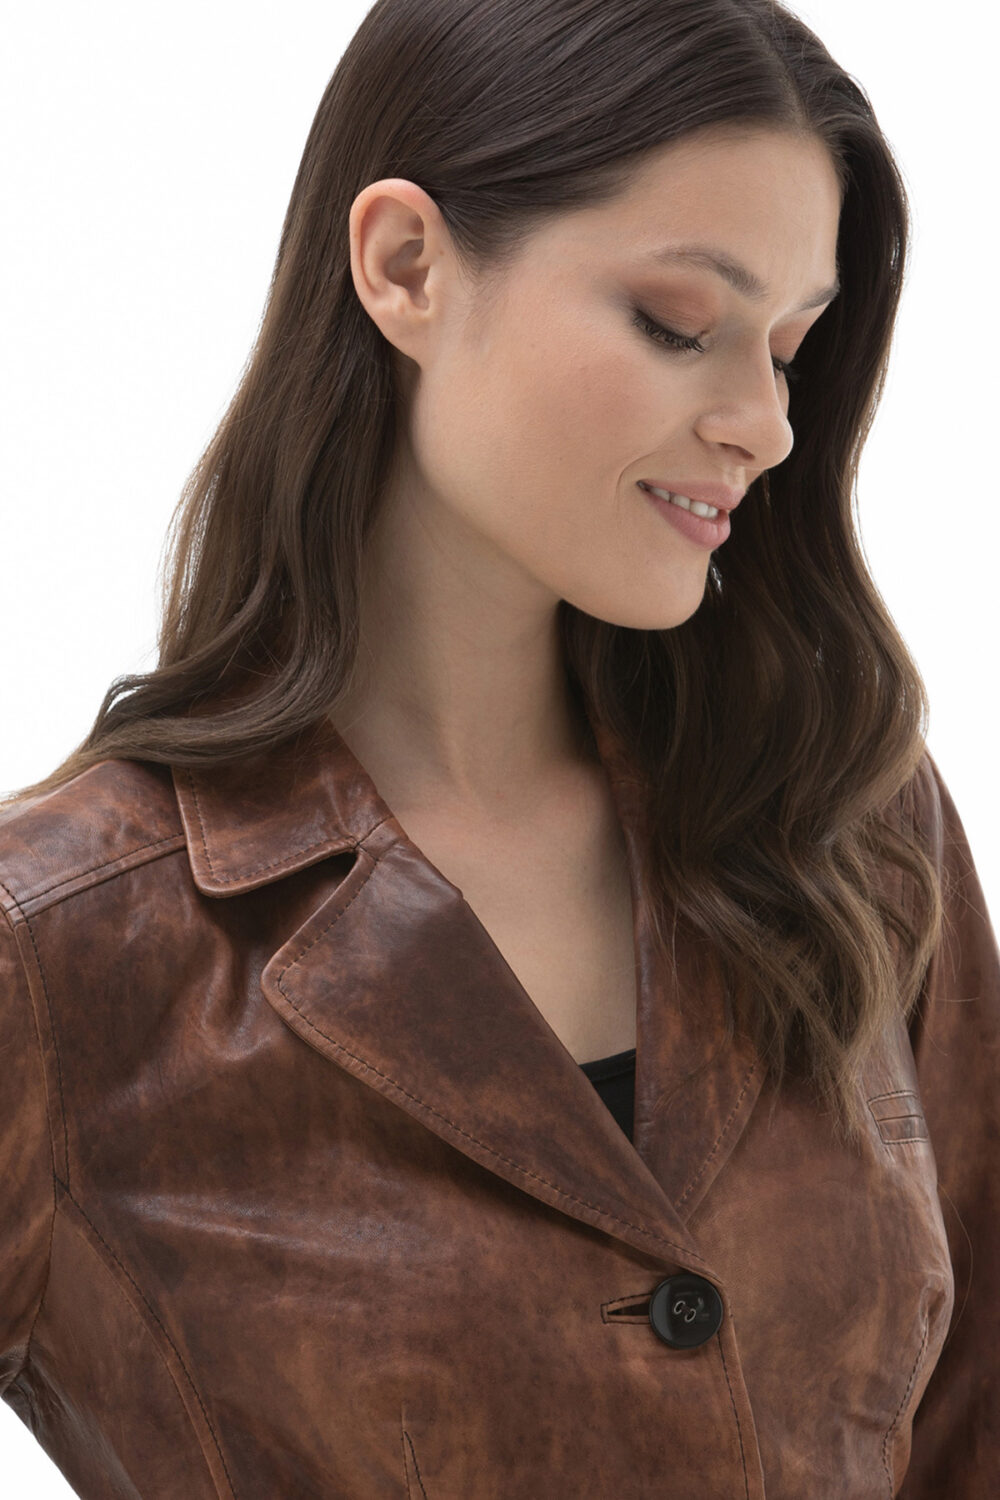 Female In Leather Jacket